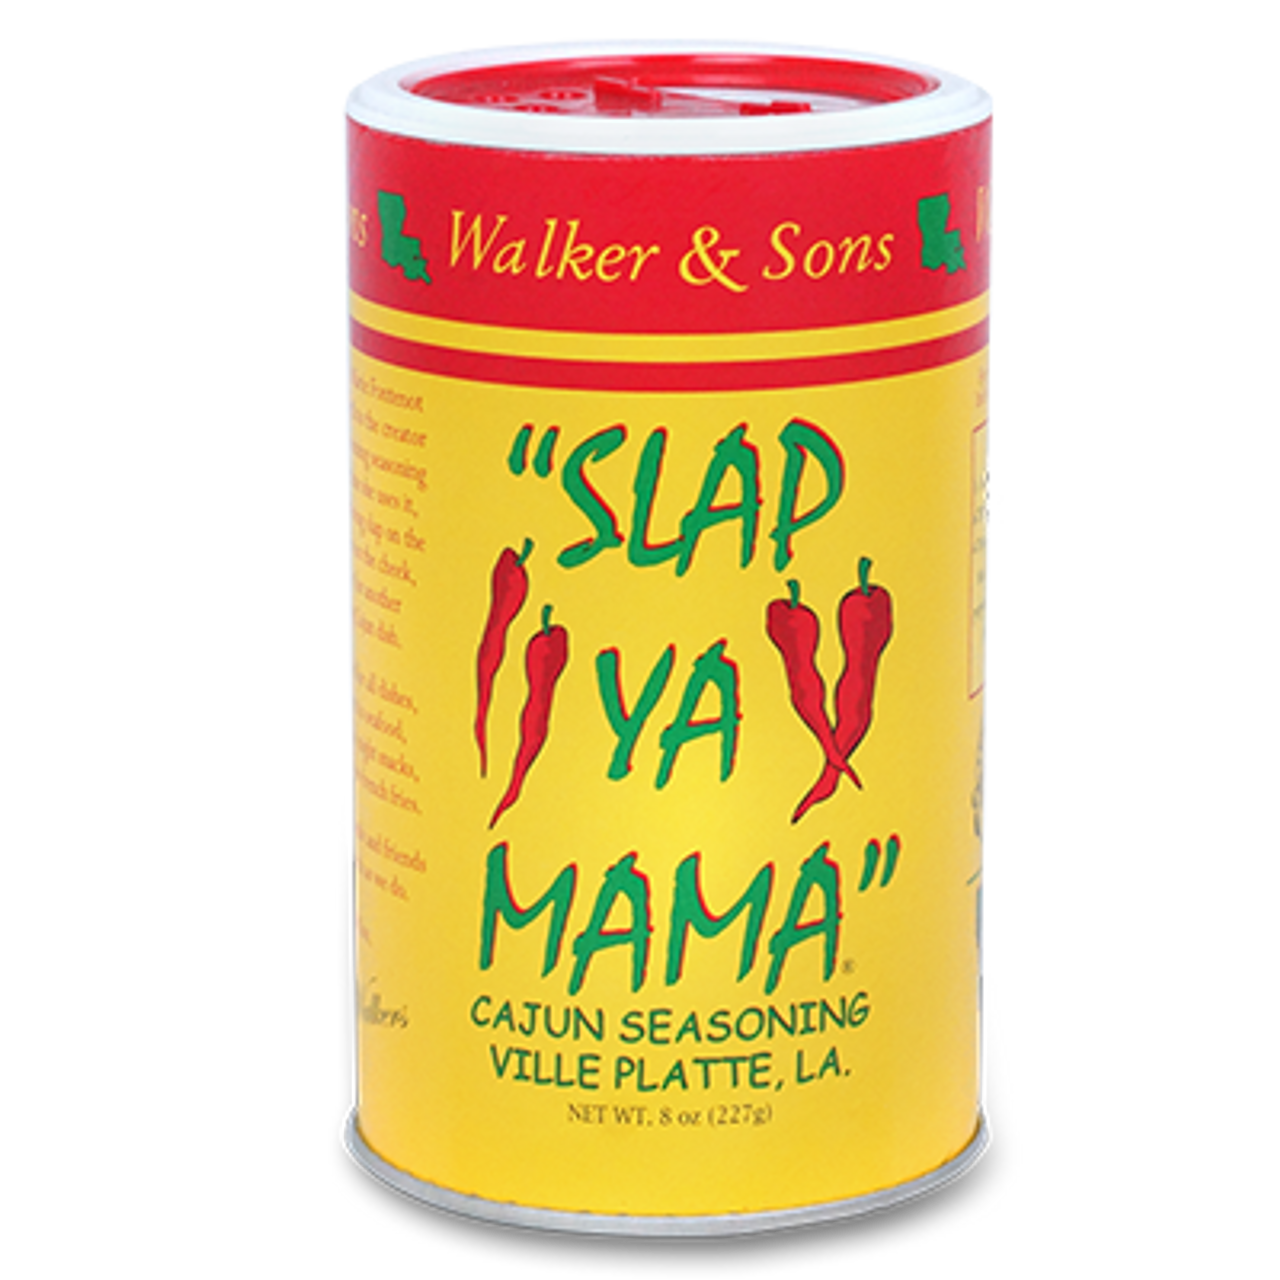 Slap Ya Mama - Original Cajun Seasoning (8 Oz.)